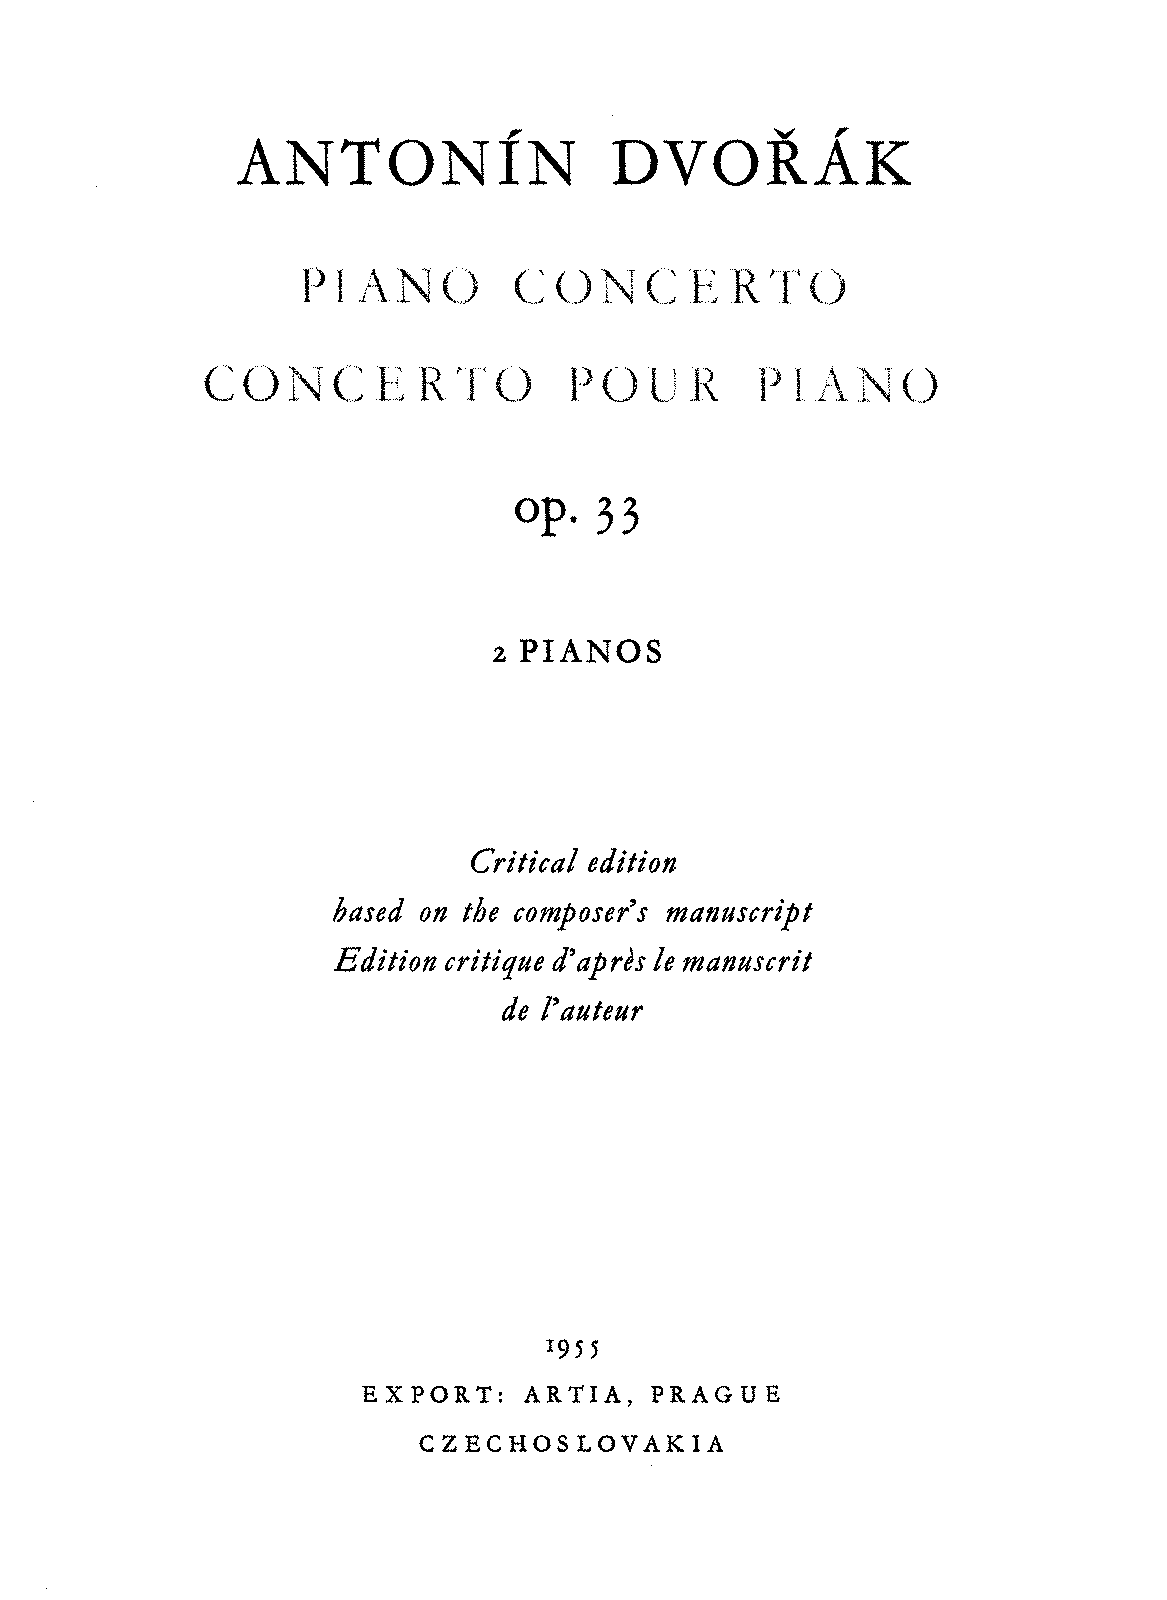 Dvorak pno concerto 2versions 2pianos.pdf